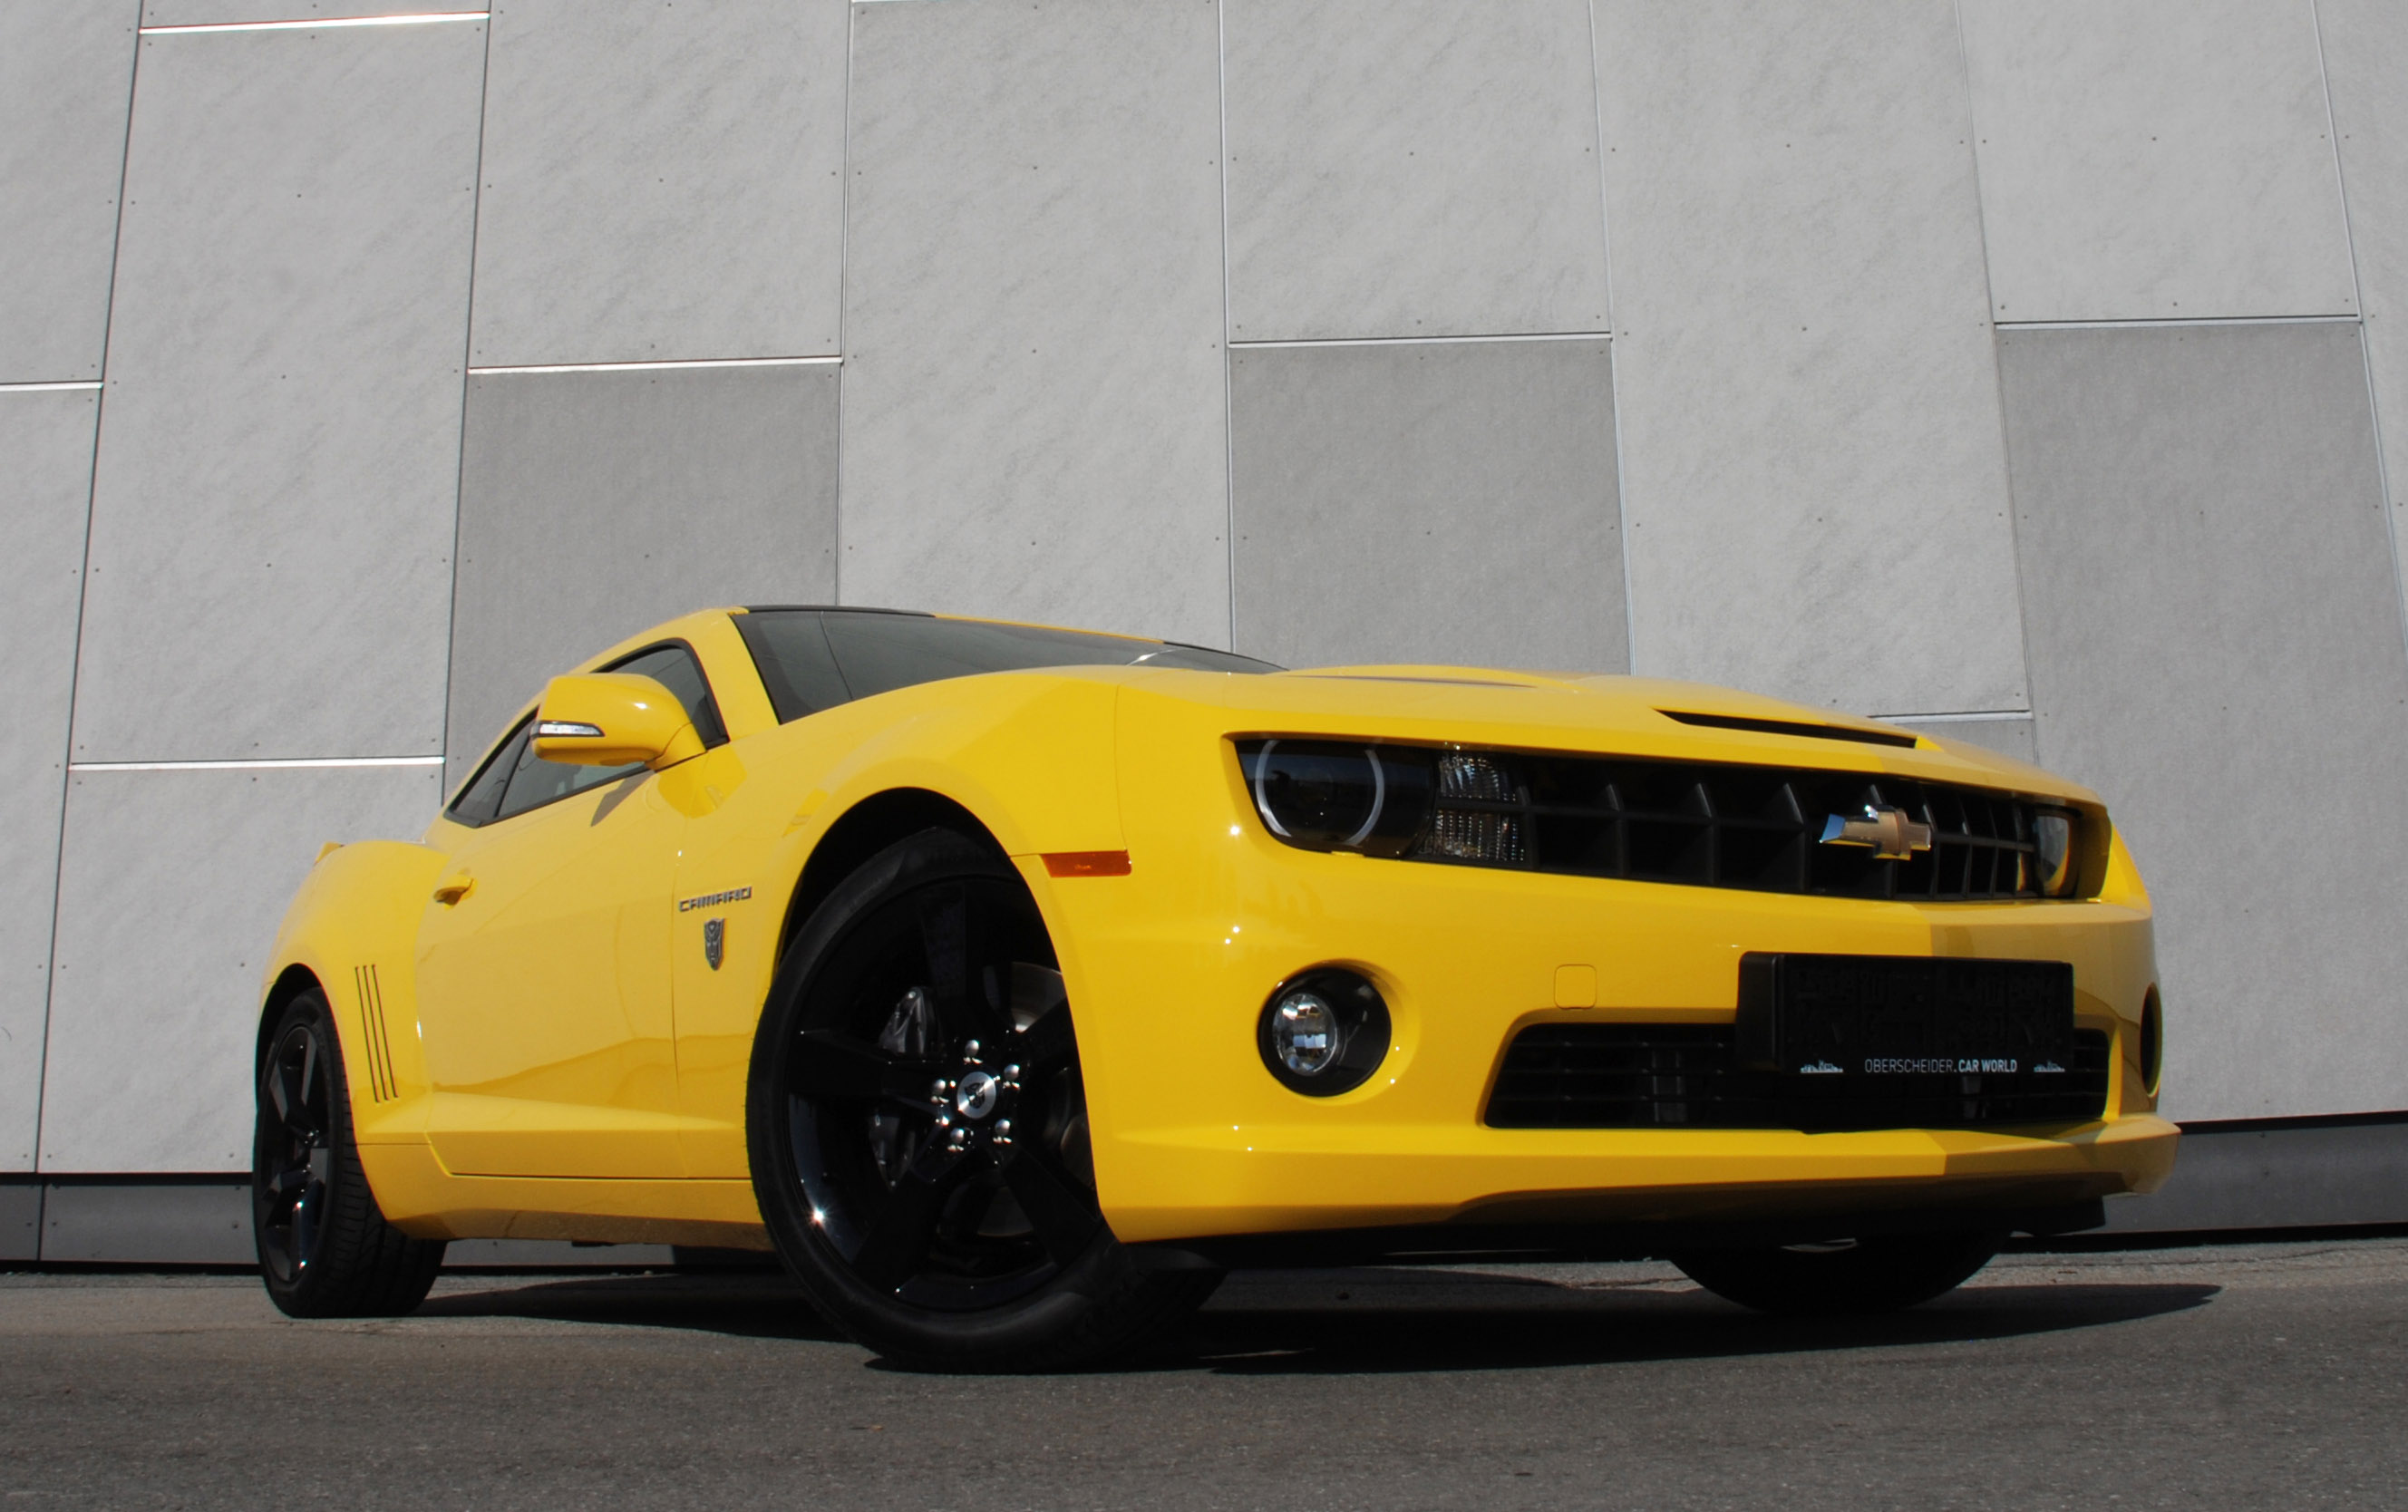 Chevrolet Camaro A K A Yellow Steam Hammer By O Ct Tuning